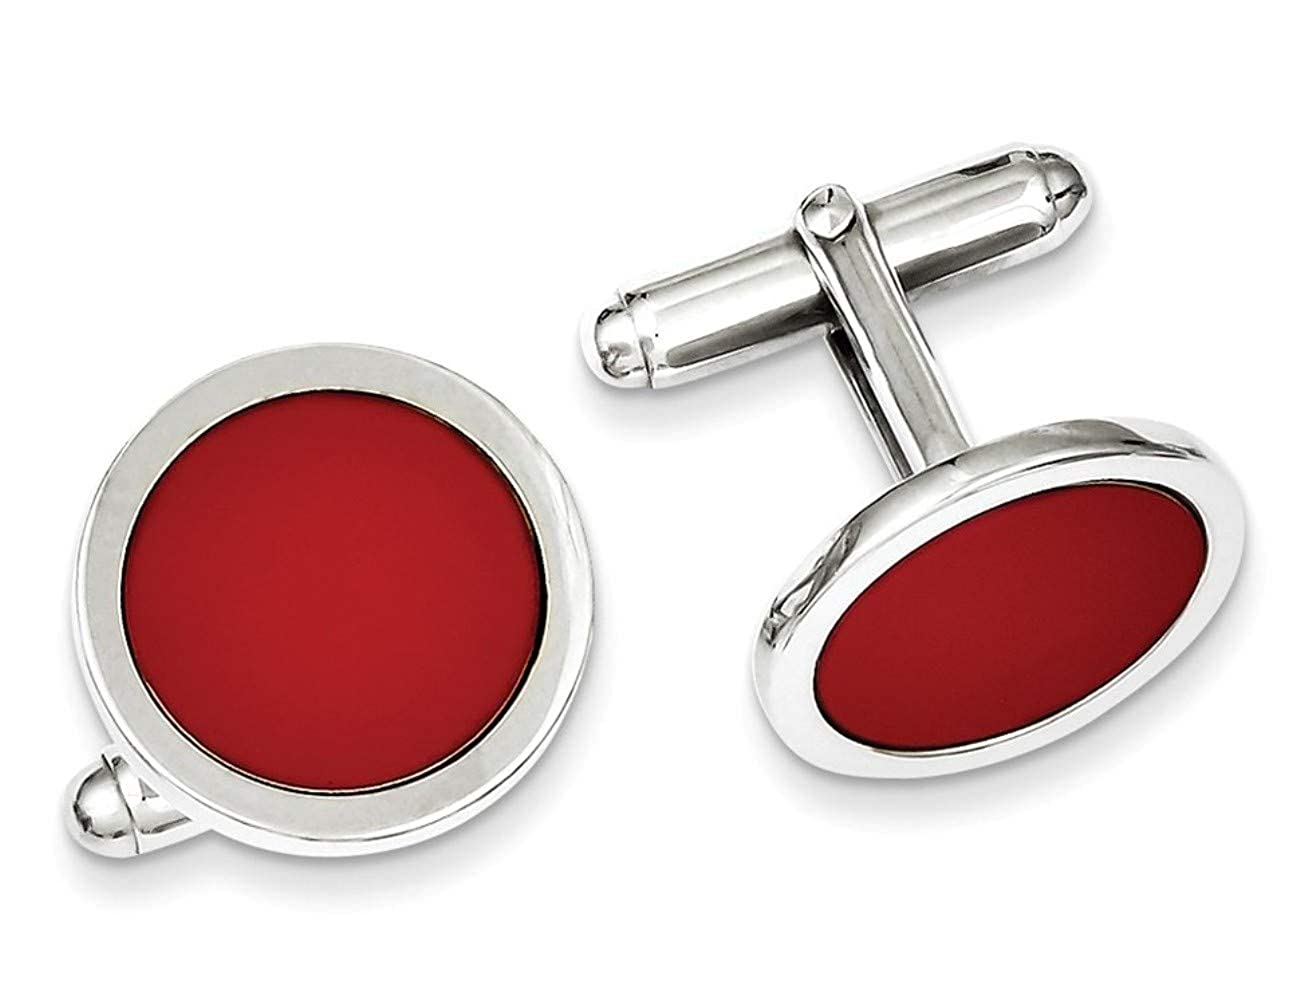 Italian Rhodium-Plated Sterling Silver Red Enameled Round Cuff Links, 18MM Cufflink Collection for Gents The Men's Jewelry Store